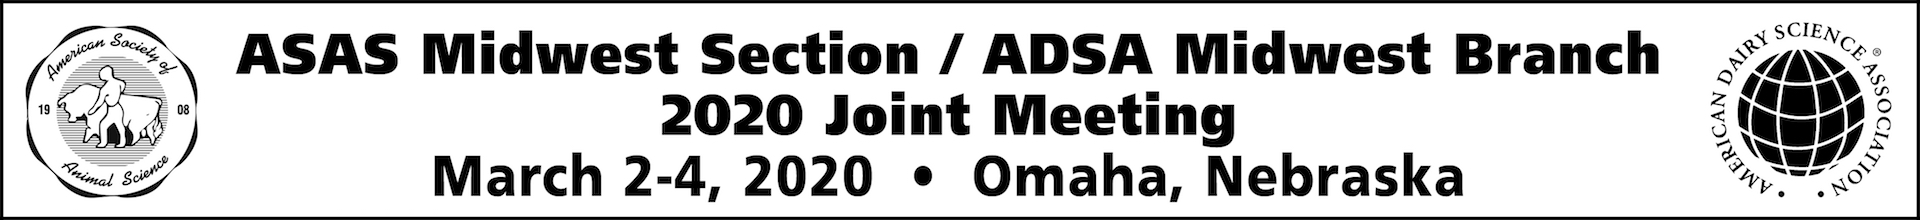 2020 ADSA ASAS Midwest Meeting Event Banner